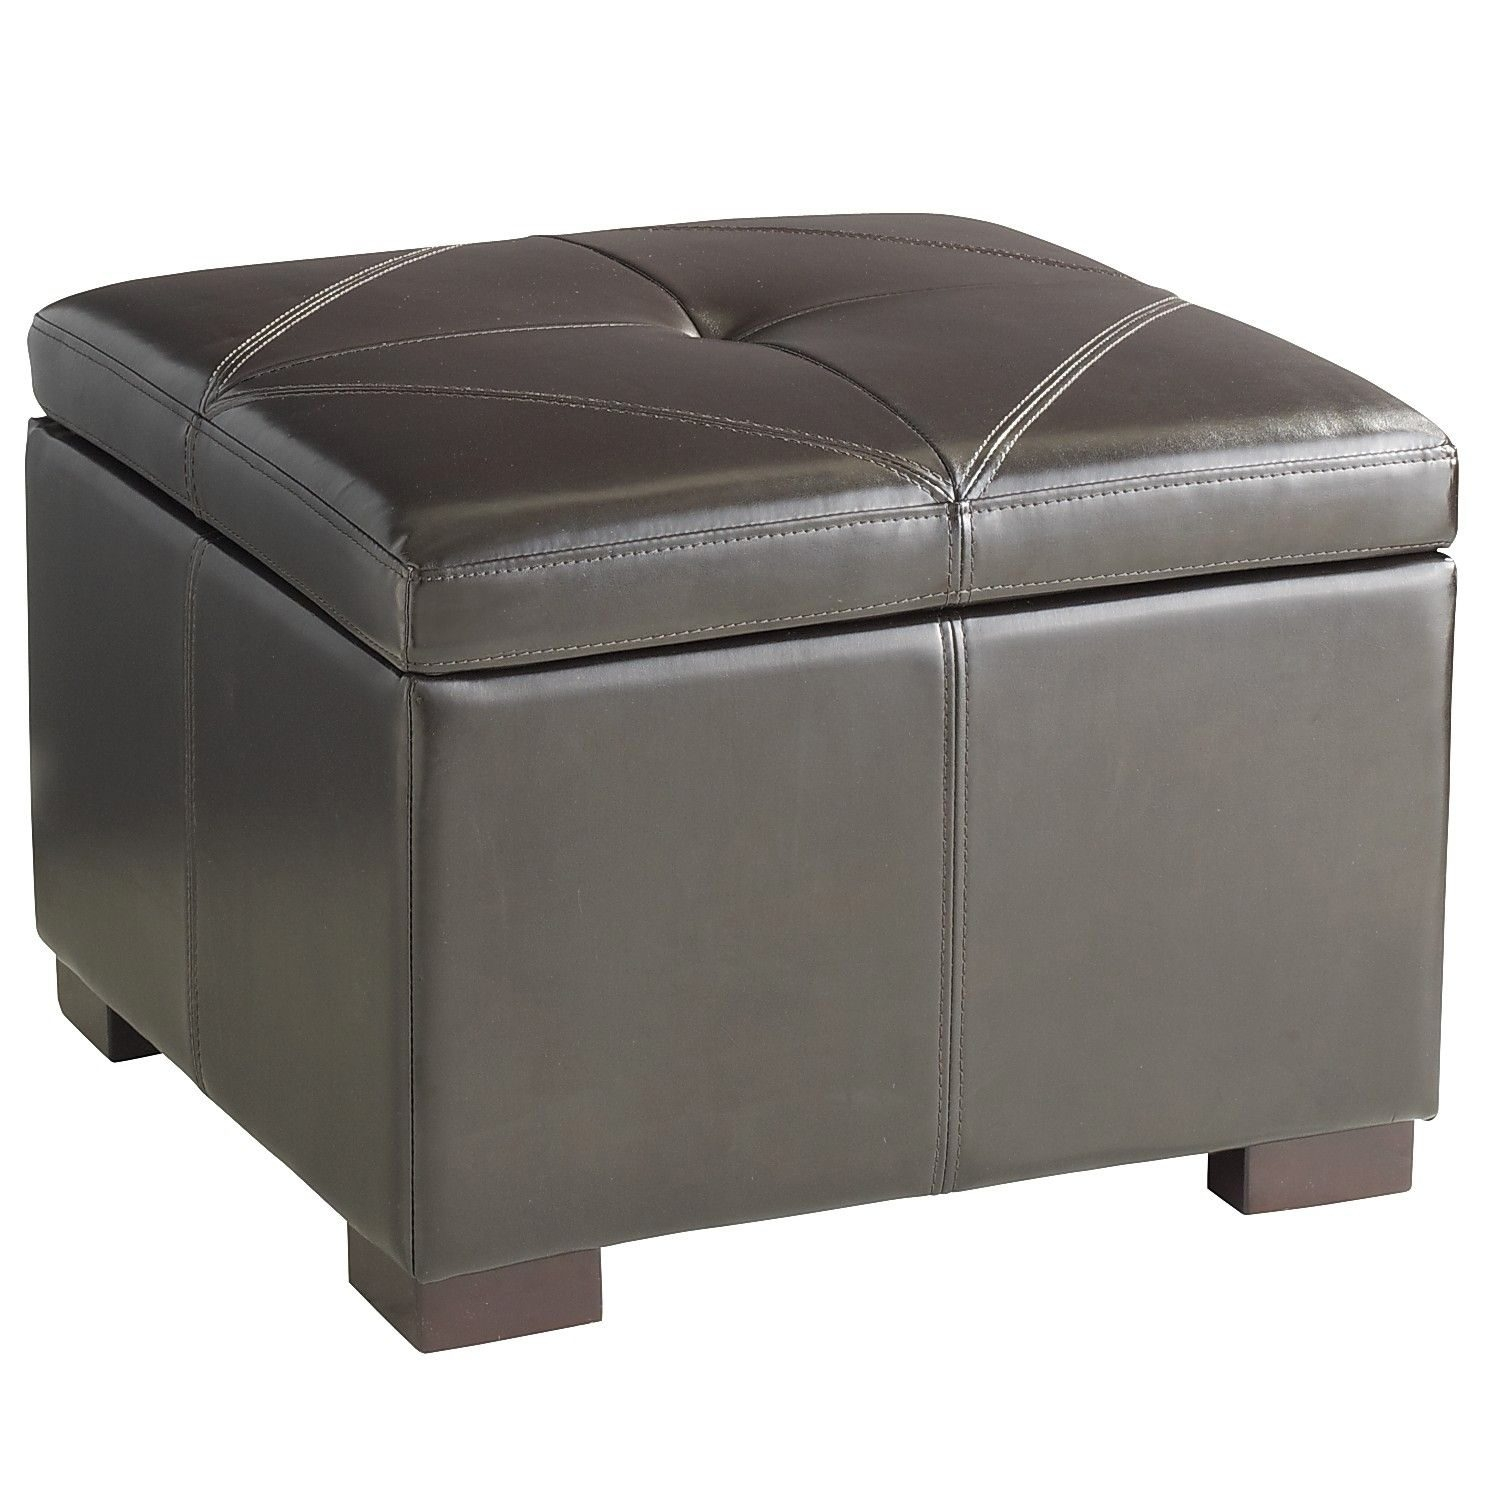 Look for small but multipurpose pieces such as a pouf that can function as seating, an ottoman or even as a side or coffee table. Bonus: They're kid-friendly and also work well in a playroom. Above, a storage ottoman from Pier 1.